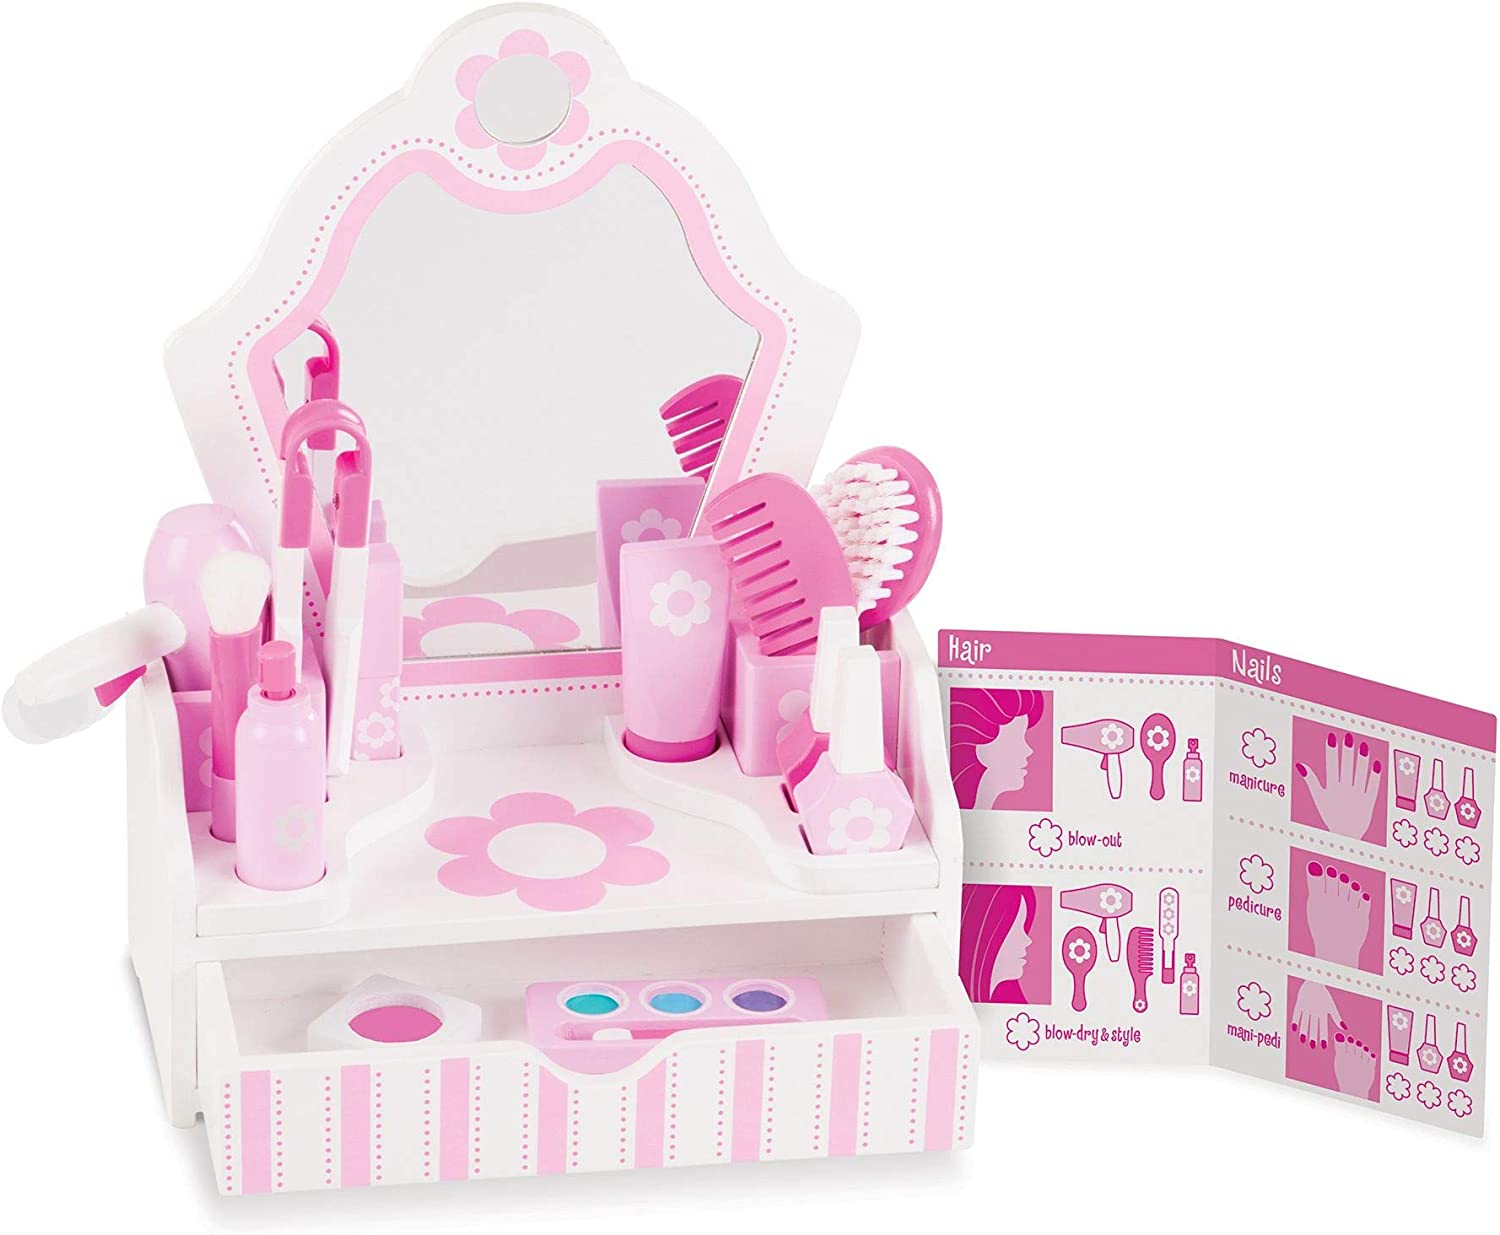 50+ Best Gift Ideas & Toys for 3 Year Old Girls Parents Should Know 36